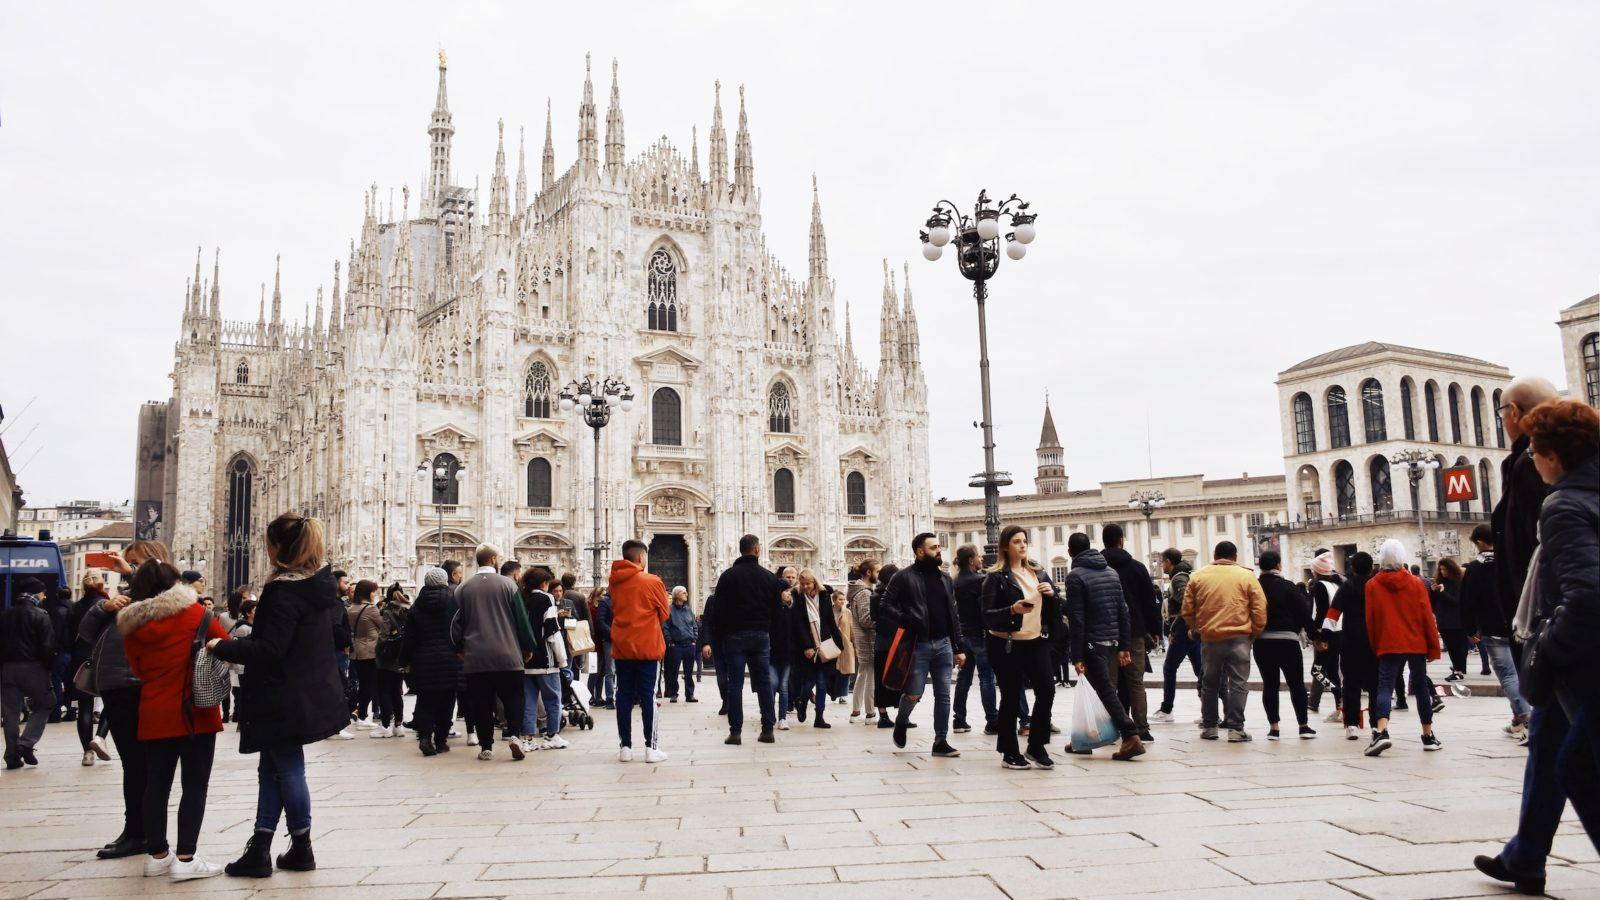 A crowd in front of the Milan catherdral